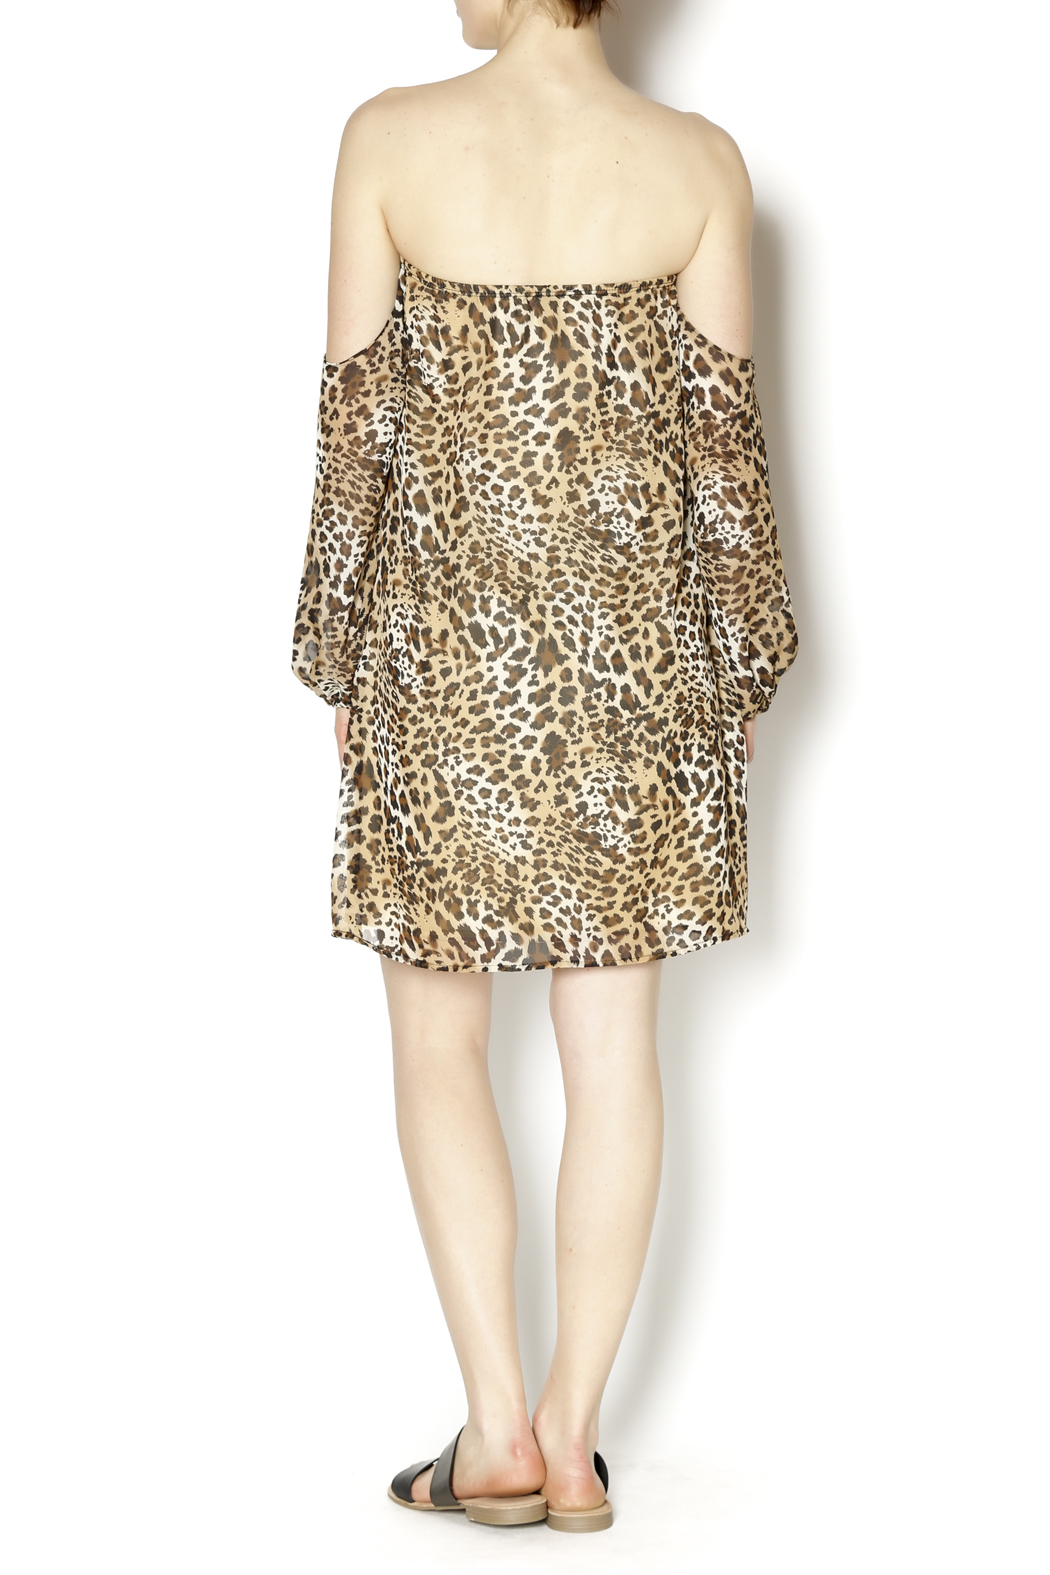 Turquoise Haven Leopard Dress - Side Cropped Image